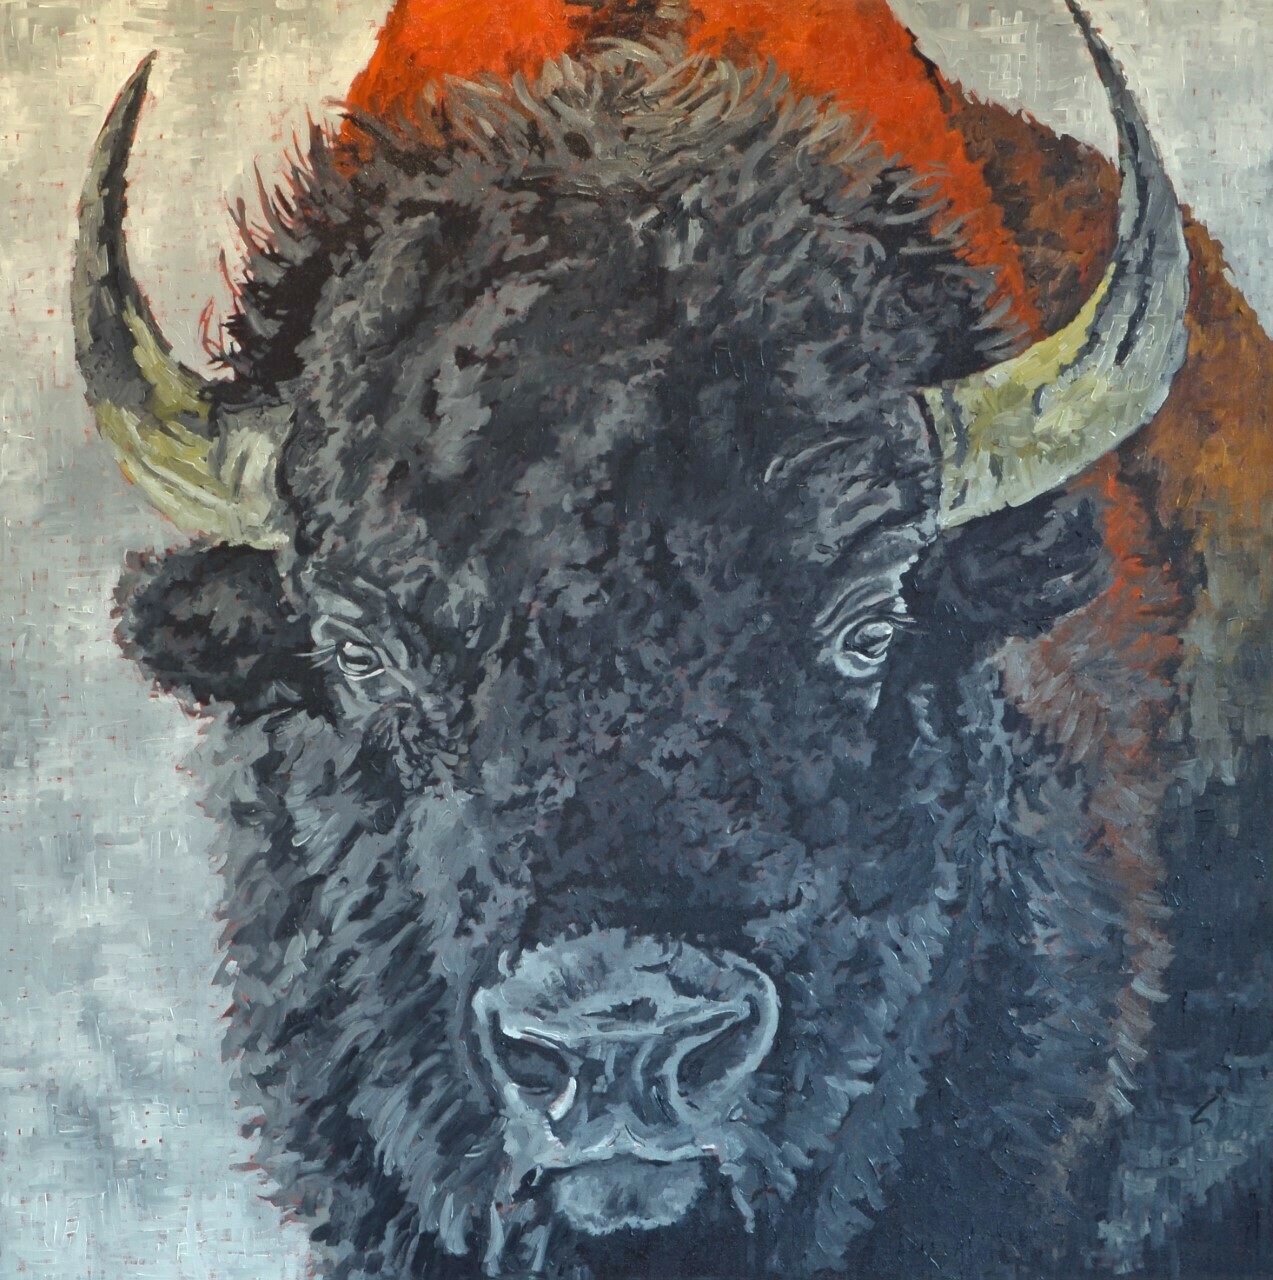 Bison 1, oil on canvas, 48x48